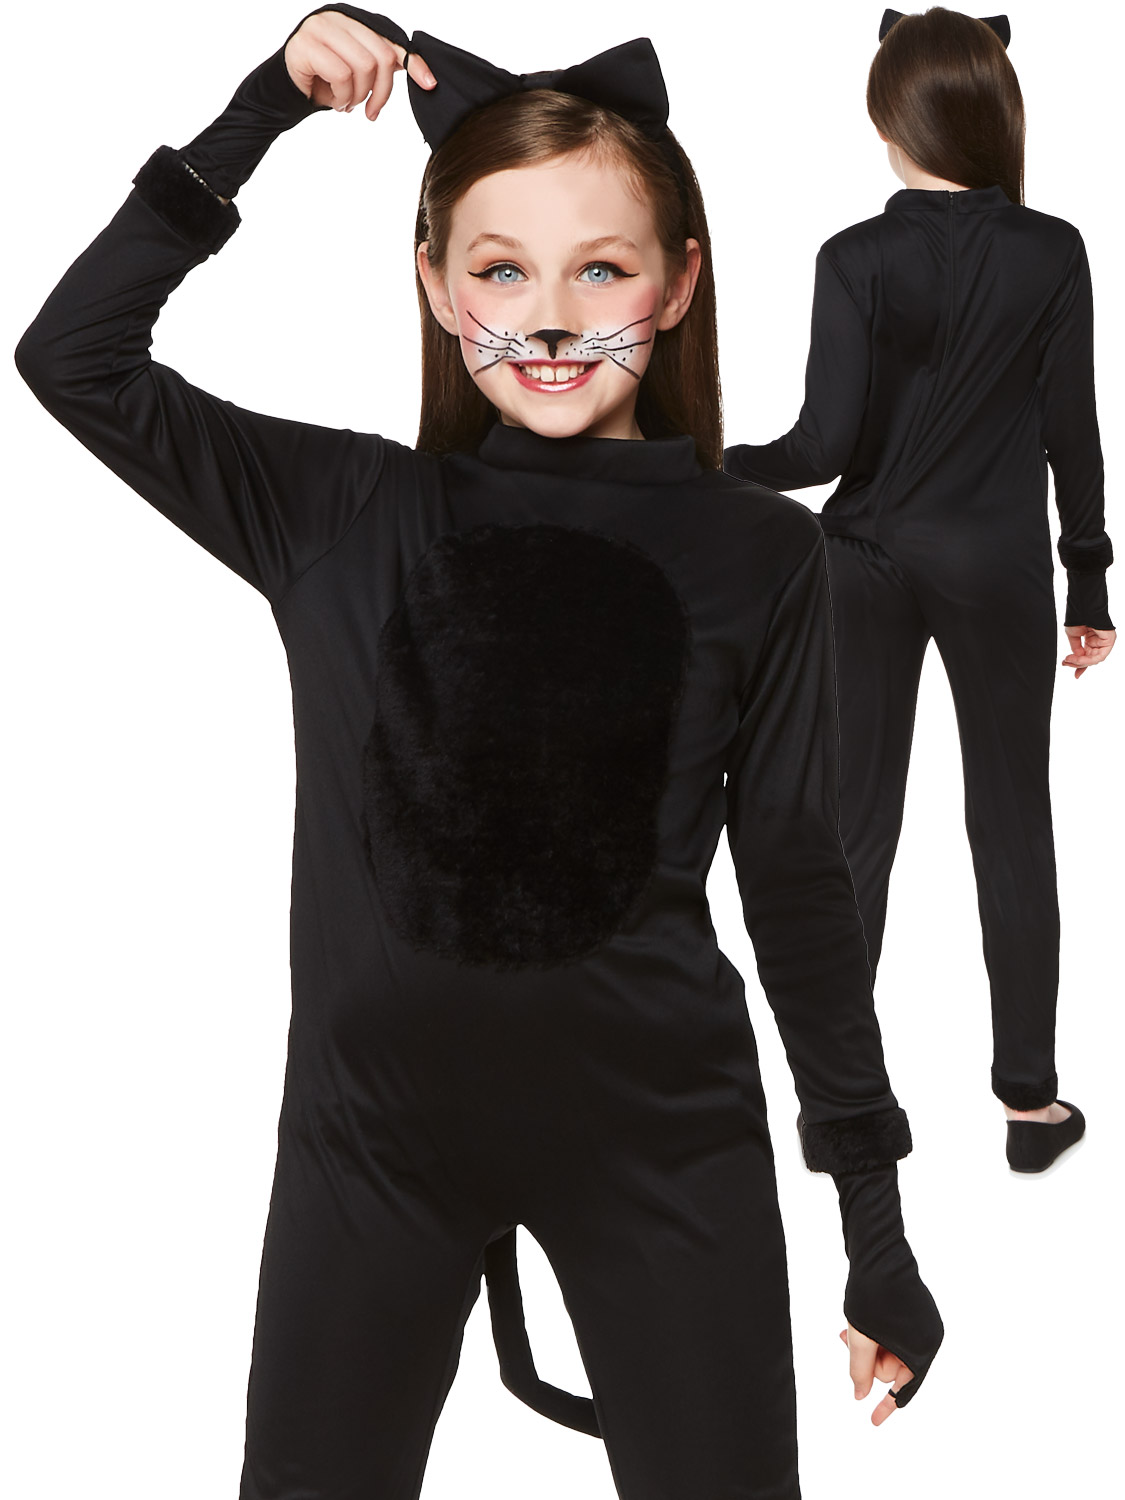 Details About Girls Black Cat Costume Childs Halloween Animal Fancy Dress Traditional Outfit